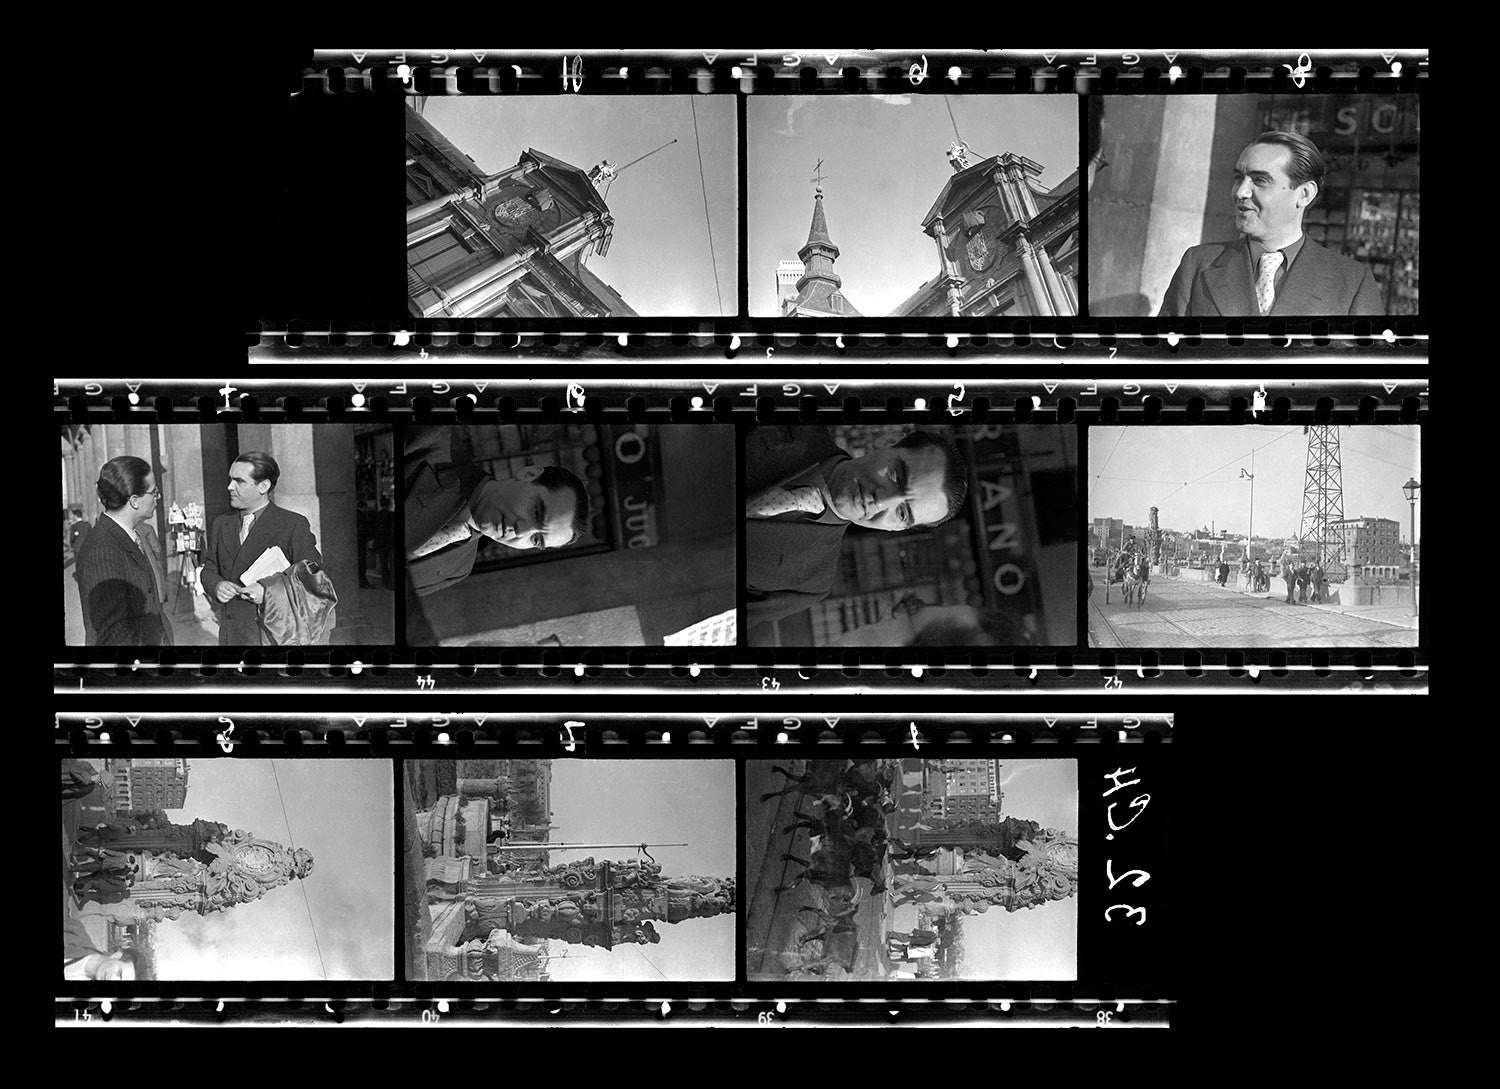 Contact Sheet Print: Spanish Civil War